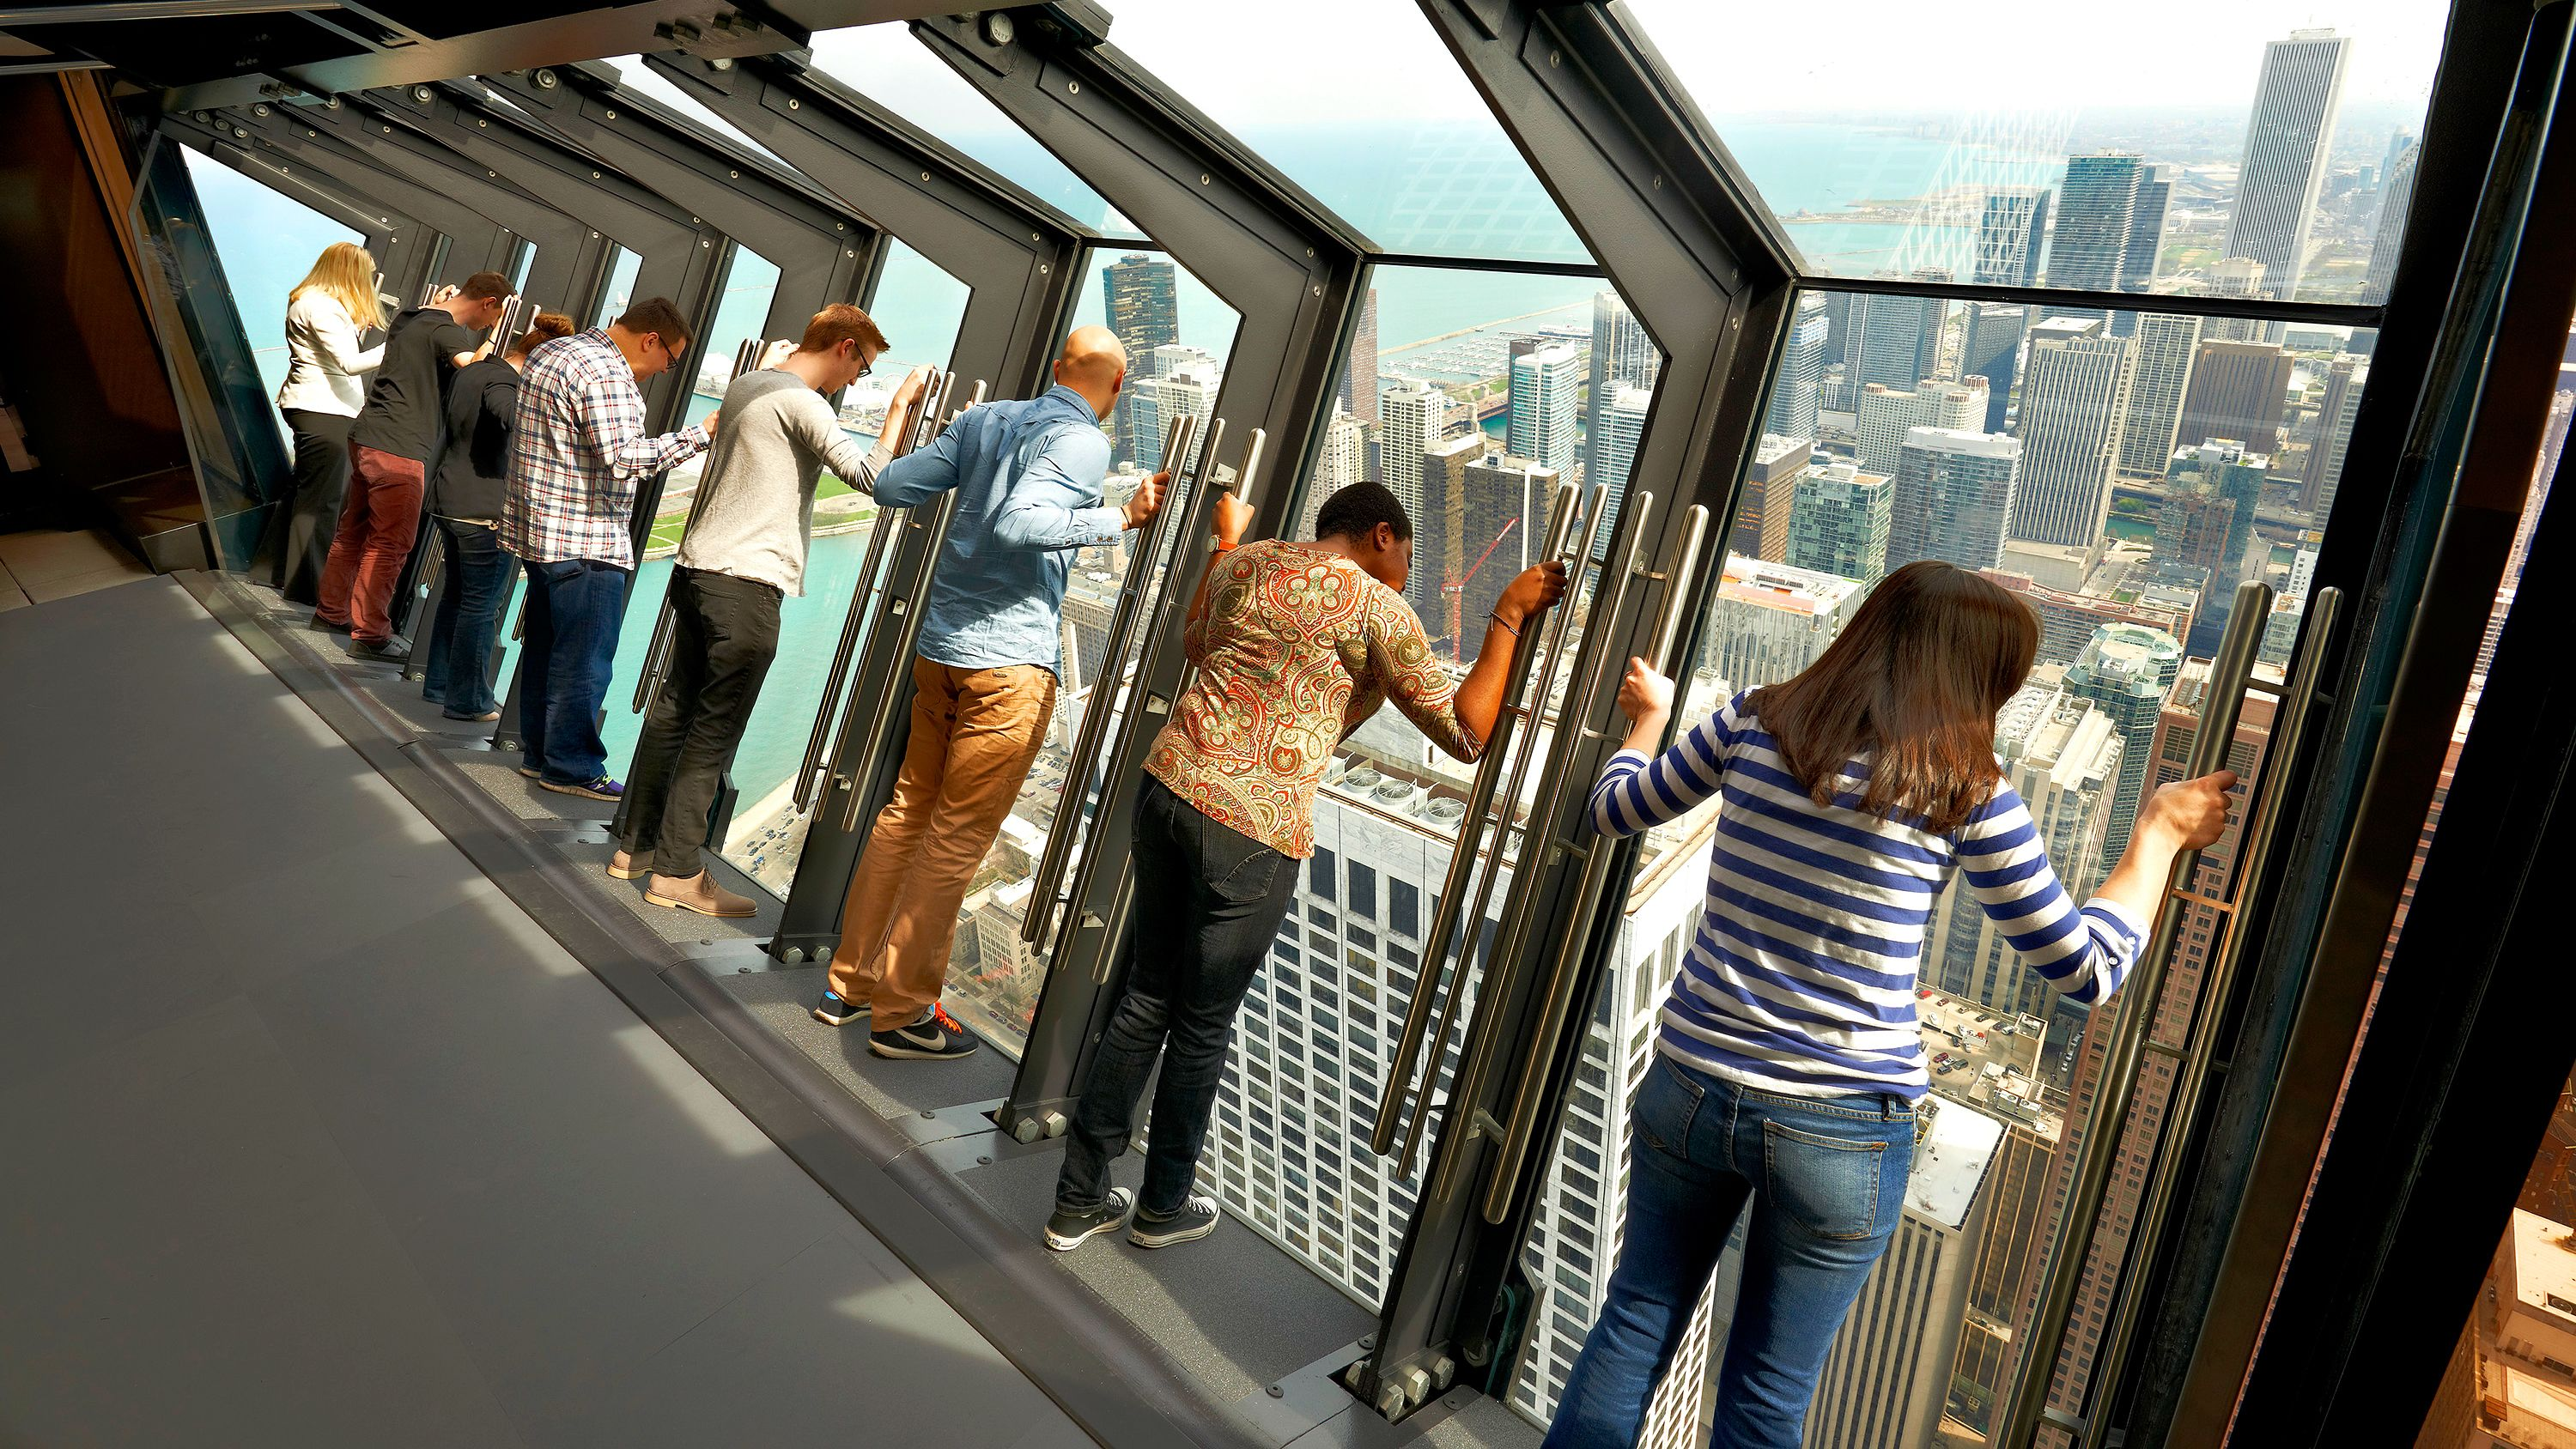 8 people at the titled view in Willis Tower, Chicago